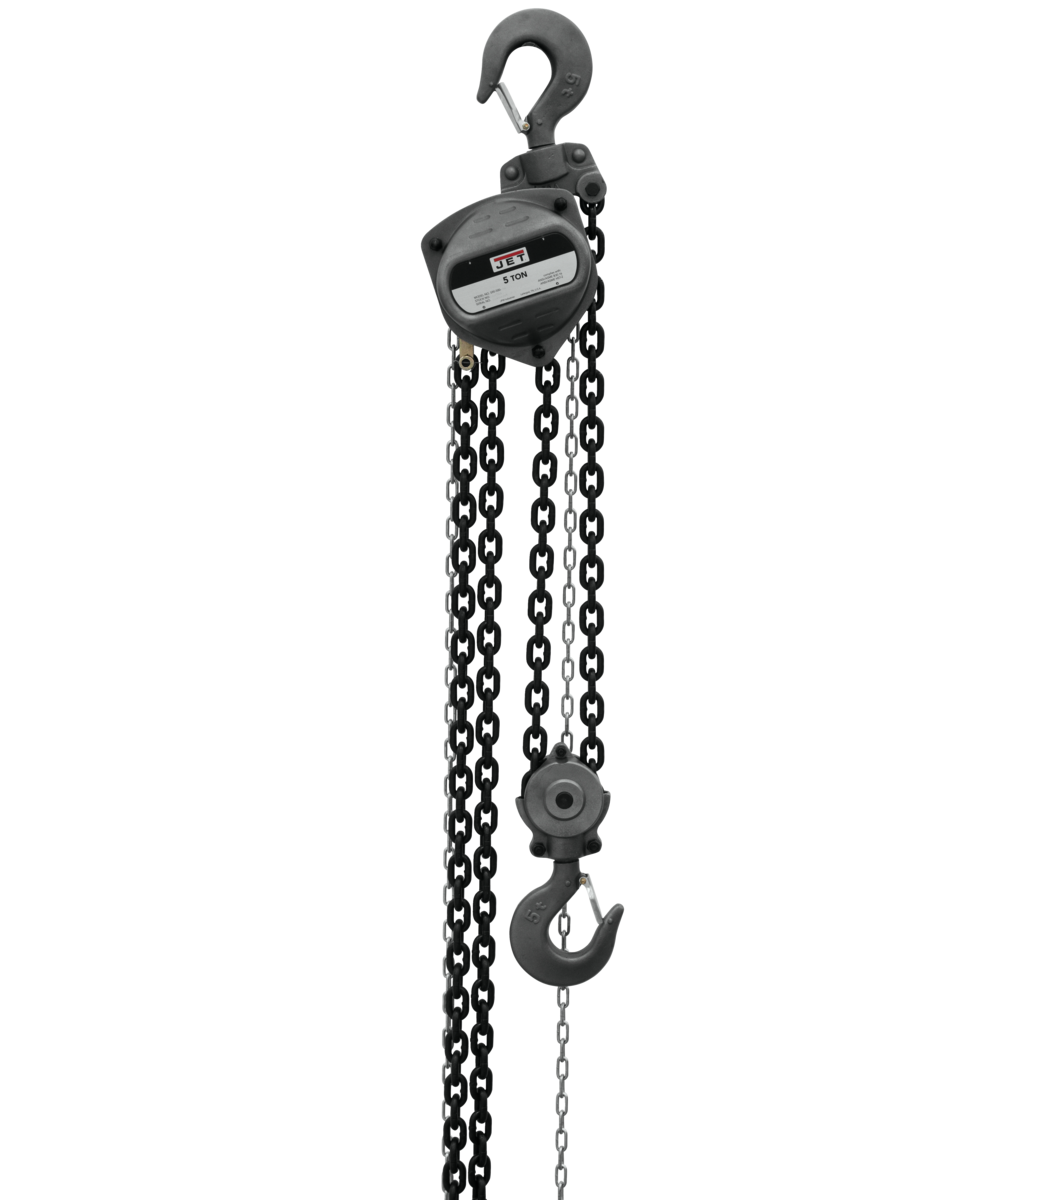 S90-500-10, 5-Ton Hand Chain Hoist With 10' Lift